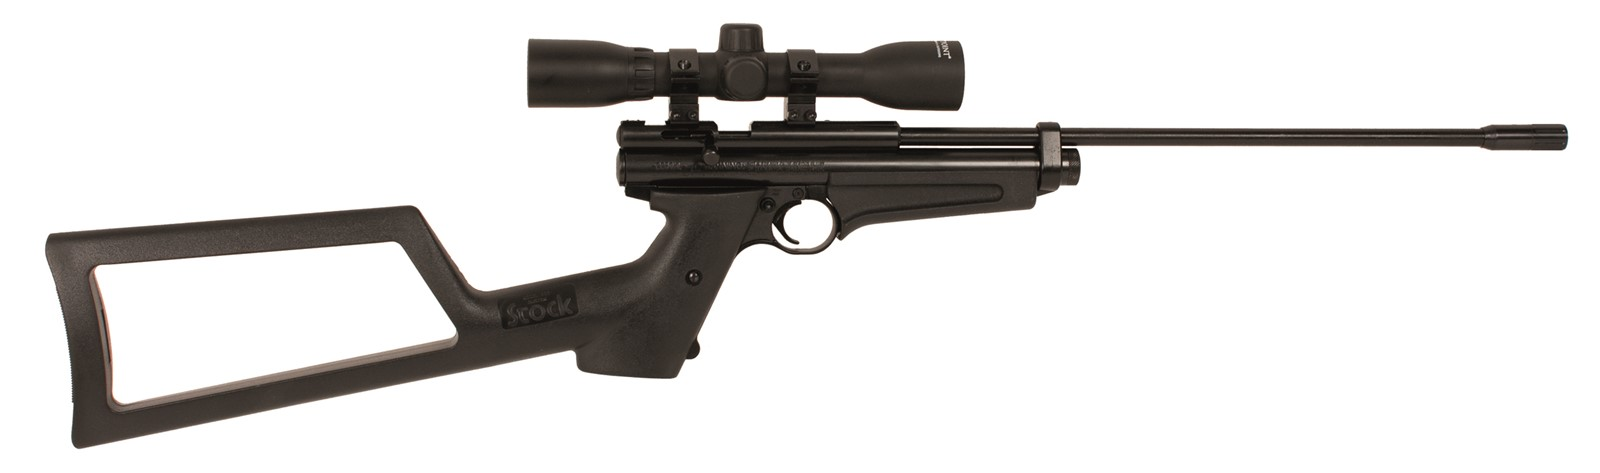 Crosman 2250 XL (Ratcatcher)  22 CO2 Air Rifle